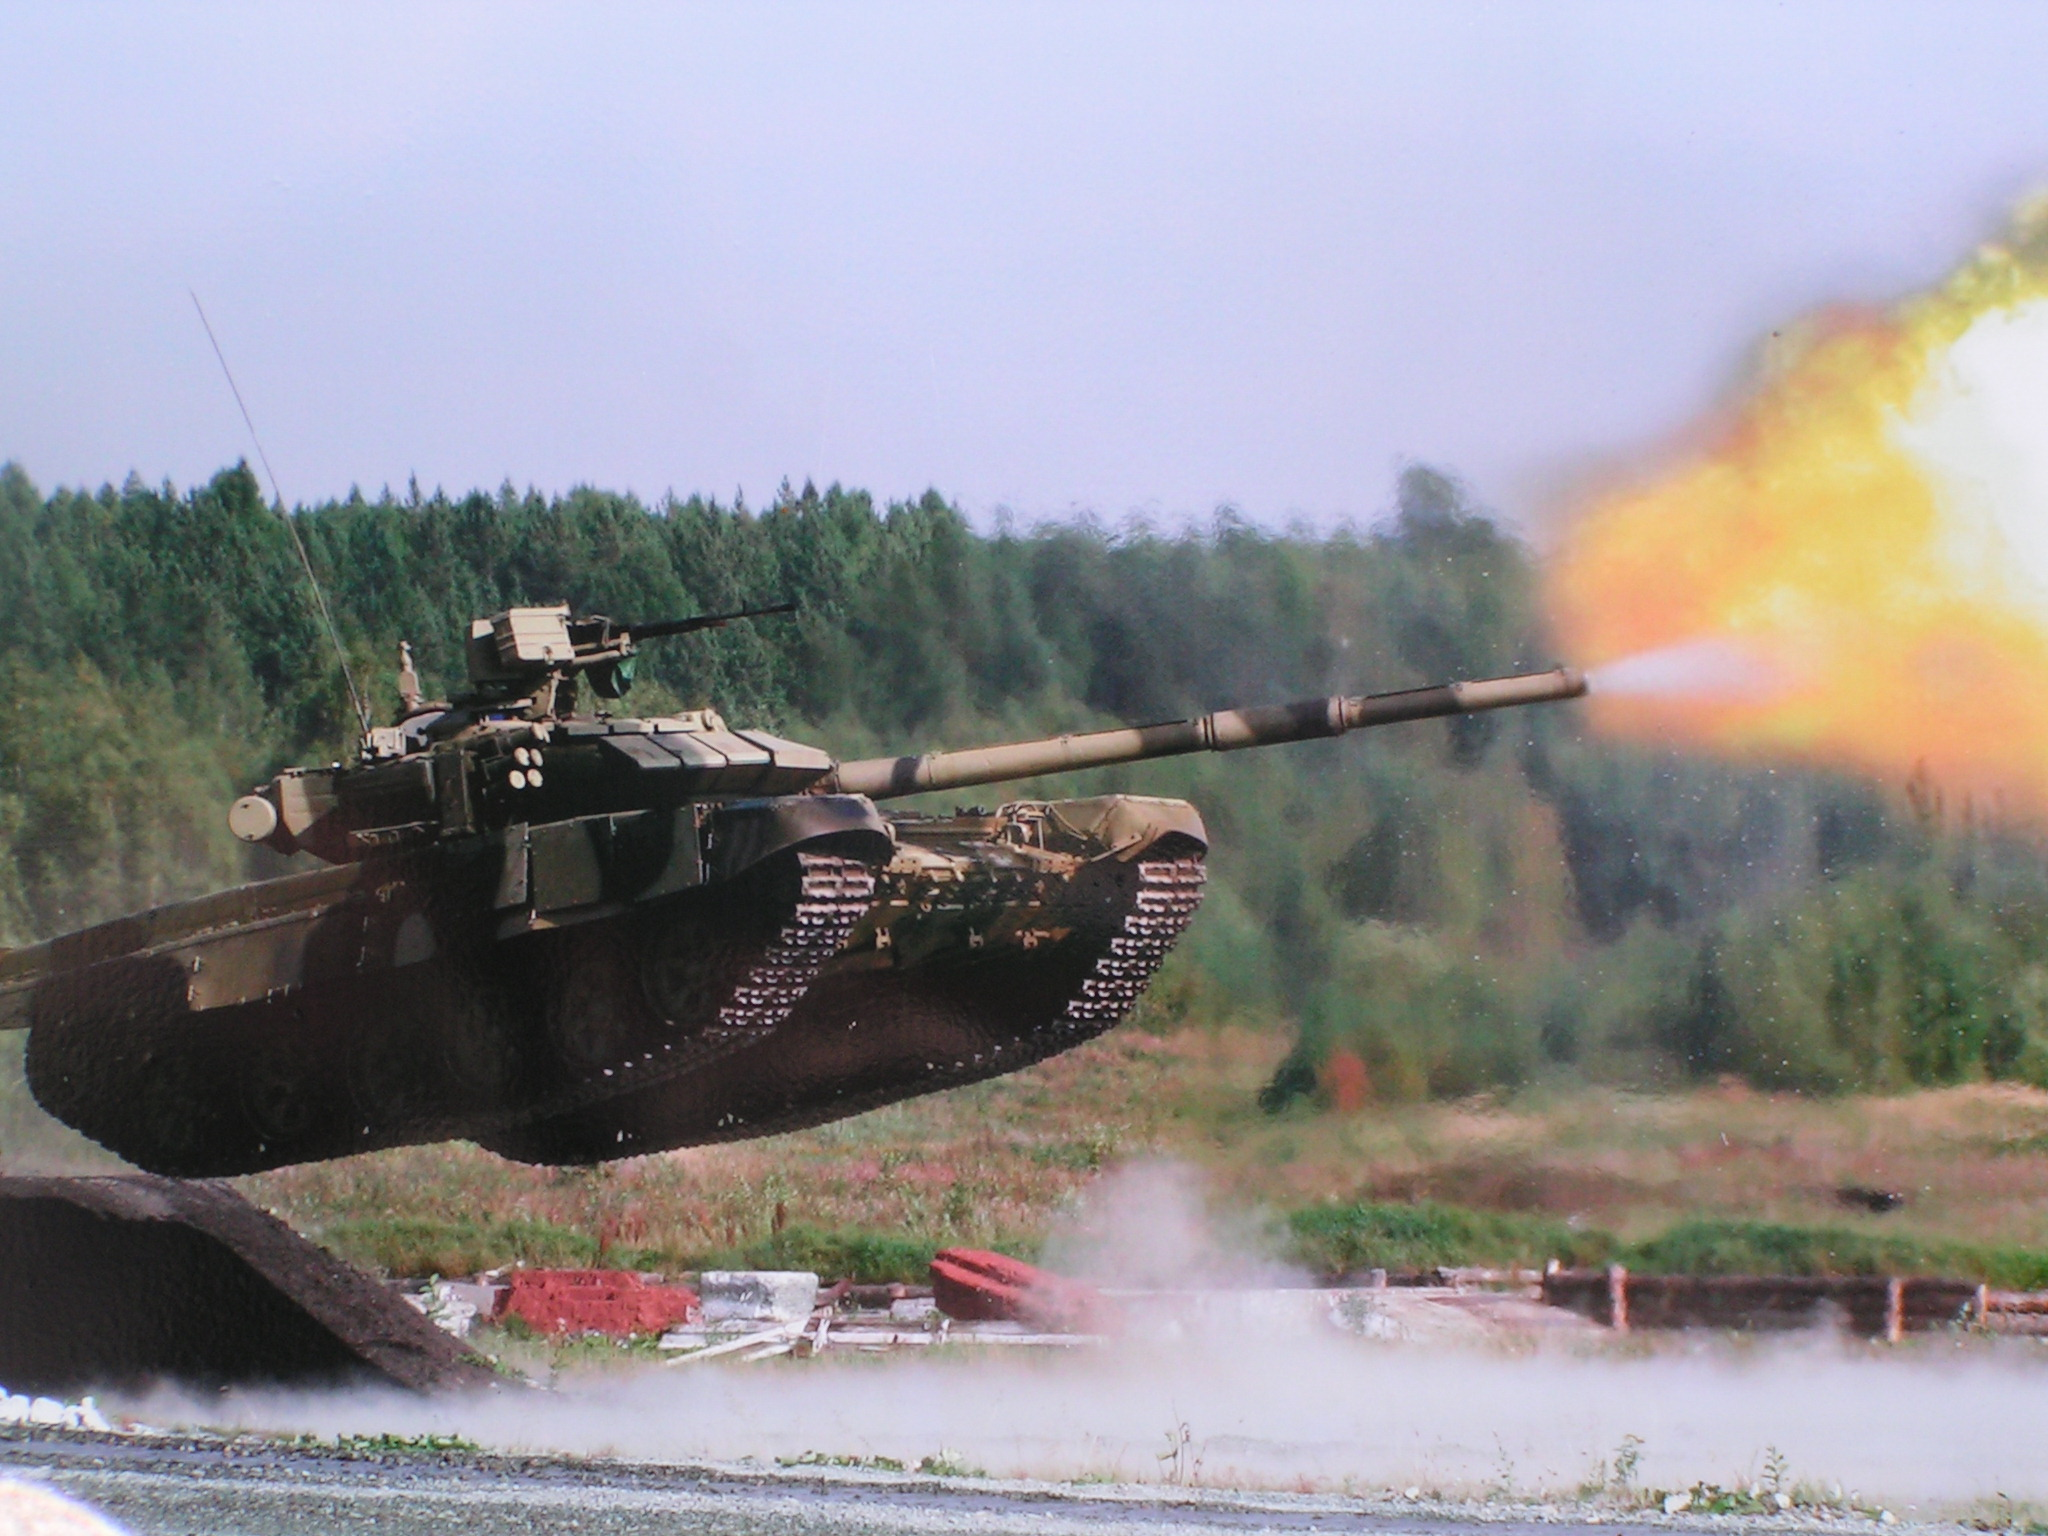 17011_tank_tank_jumping_and_shooting.jpg